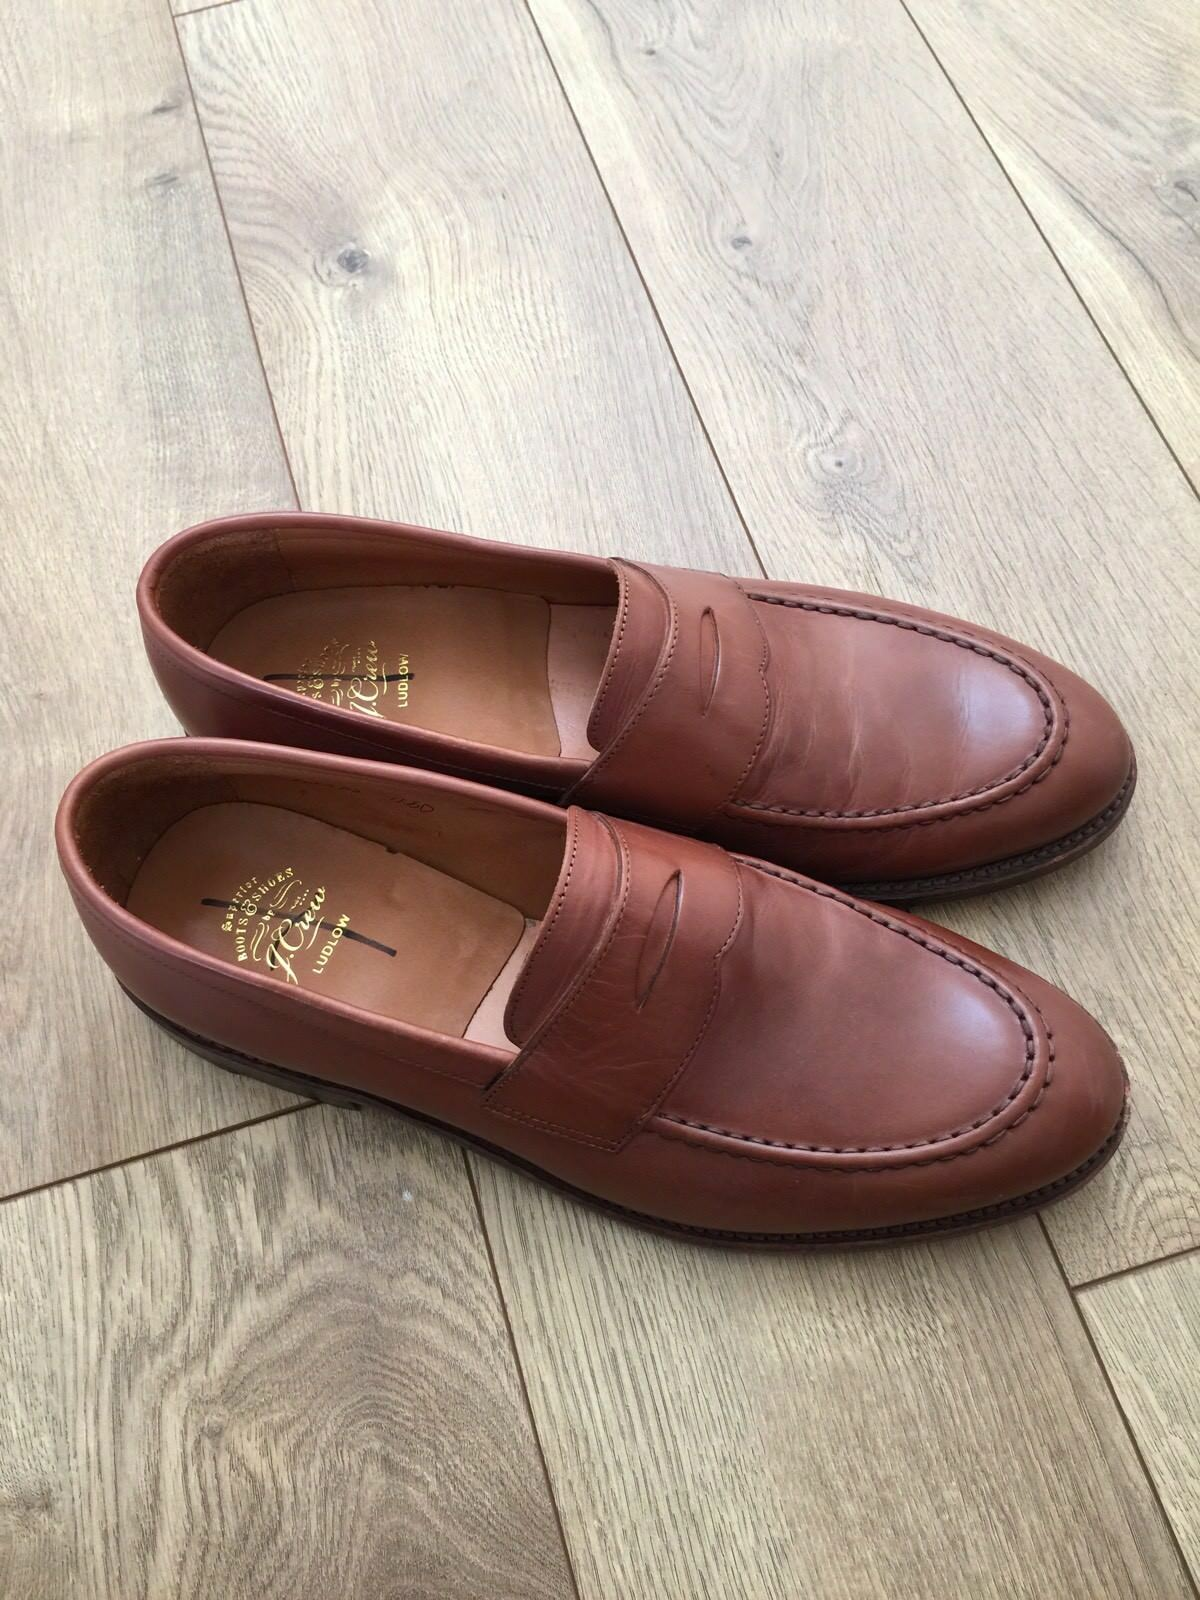 623845d3256 J.CREW MENS LUDLOW PENNY LOAFERS DRESS SHOE A4362 SIZE 11.5 D  298 ENGLISH  TAN